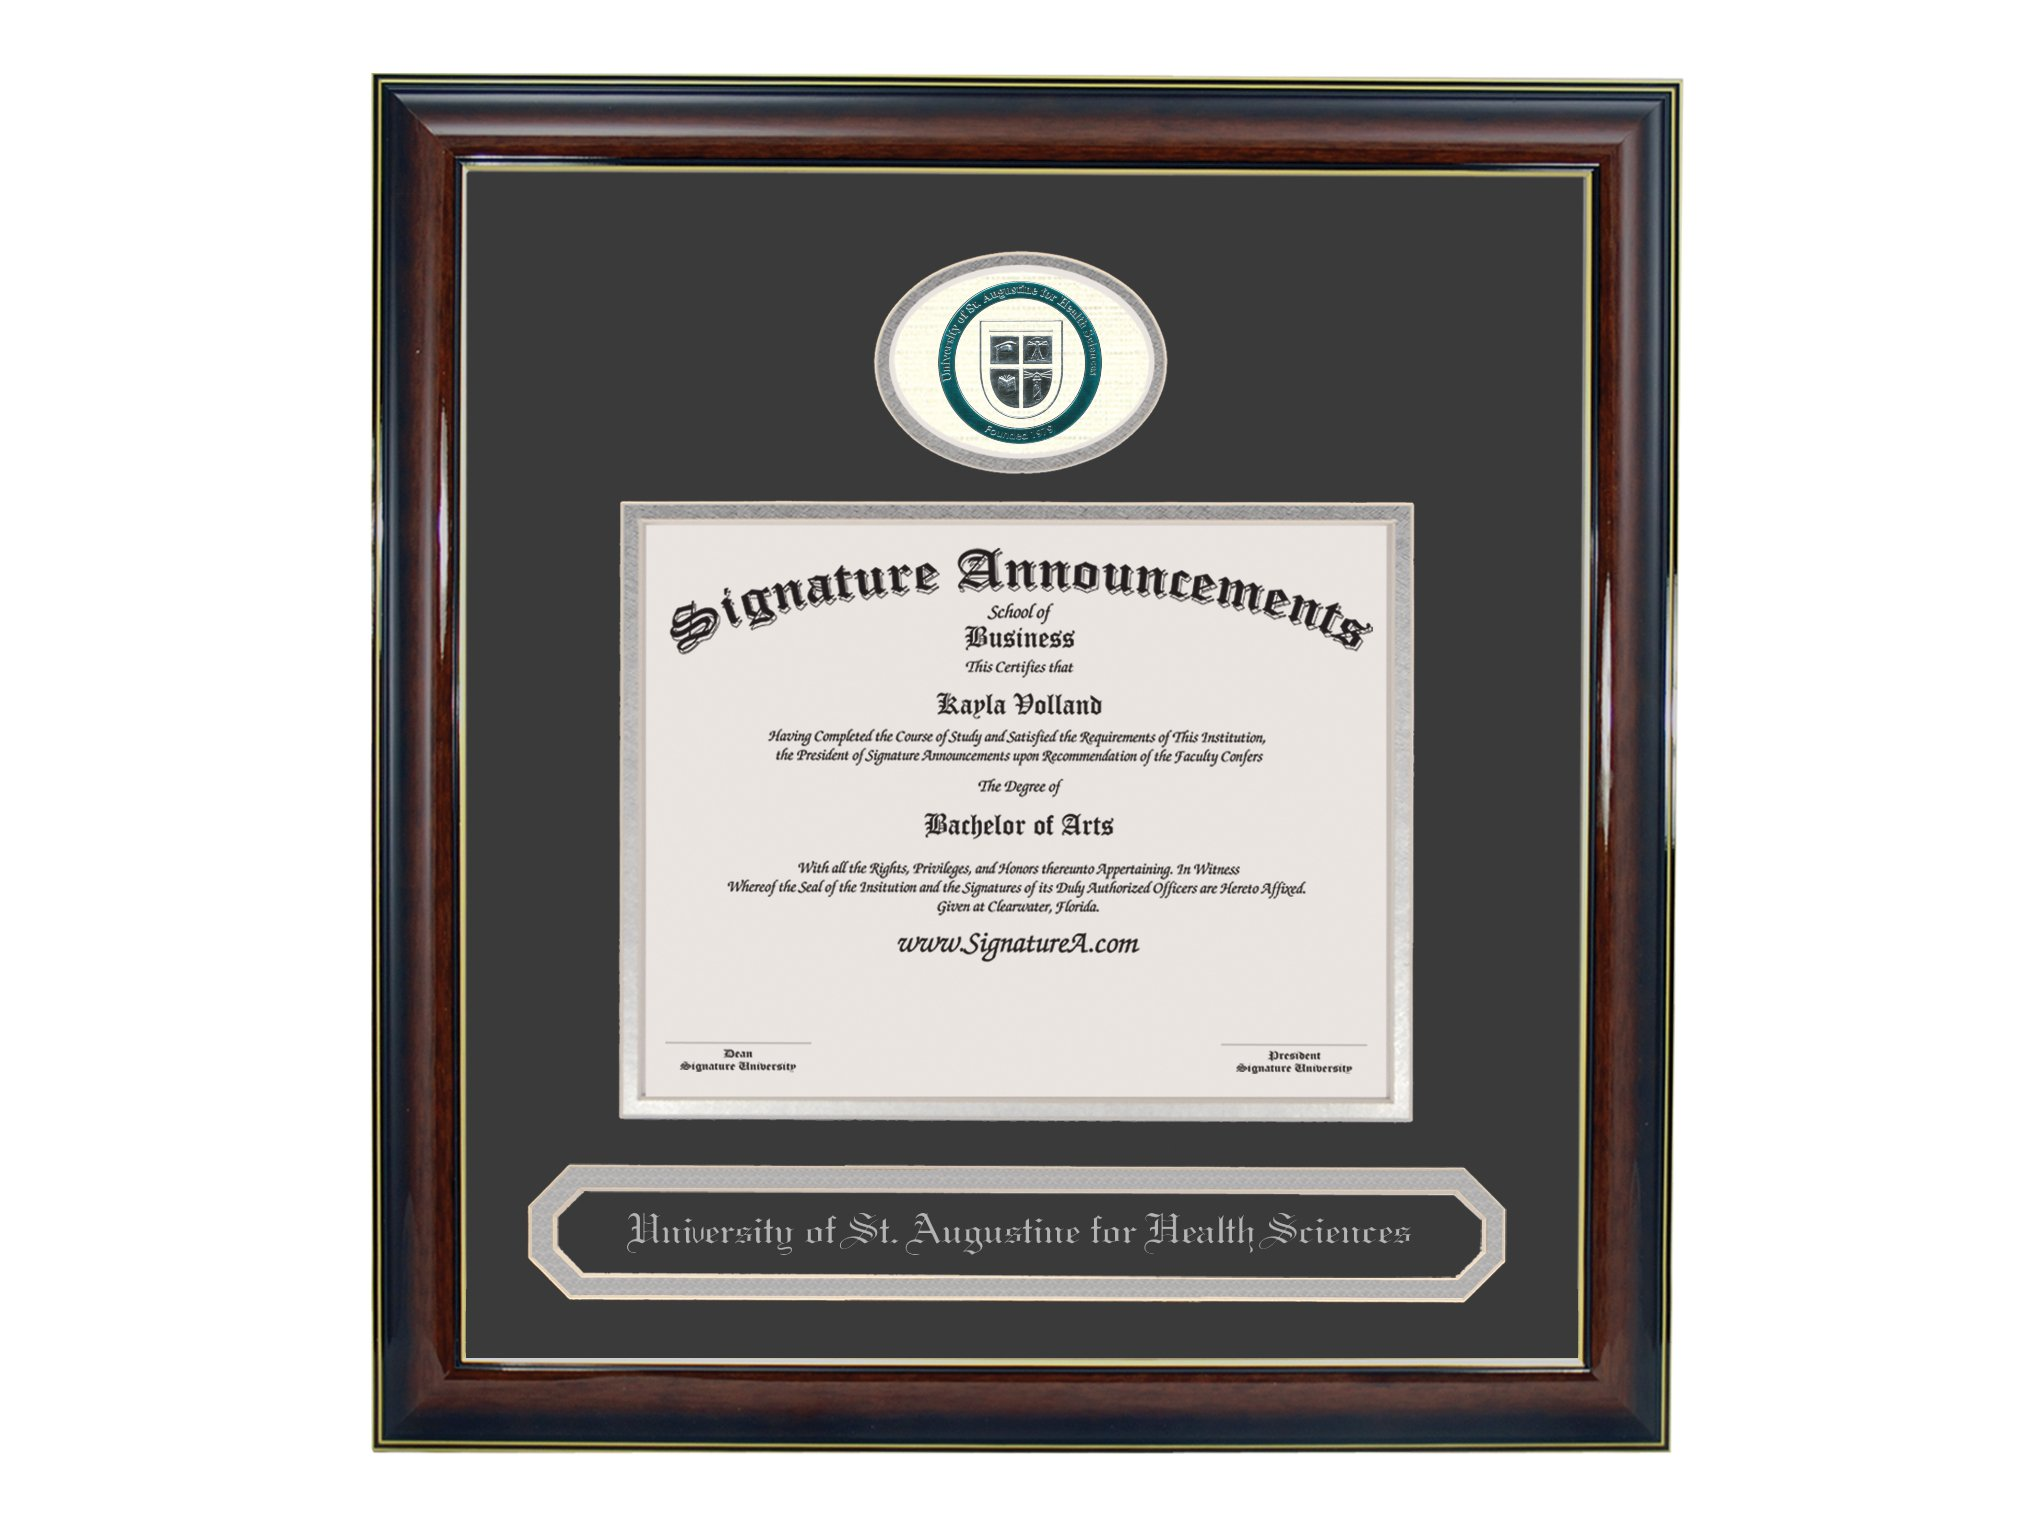 Signature Announcements Univ-of-St.-Augustine-for-Health-Sci-Master's Undergraduate, Graduate/Professional/Doctor Seal & Name Diploma Frame (Gloss Mahogany w/Gold Accent, 16 x 16) by Signature Announcements (Image #1)